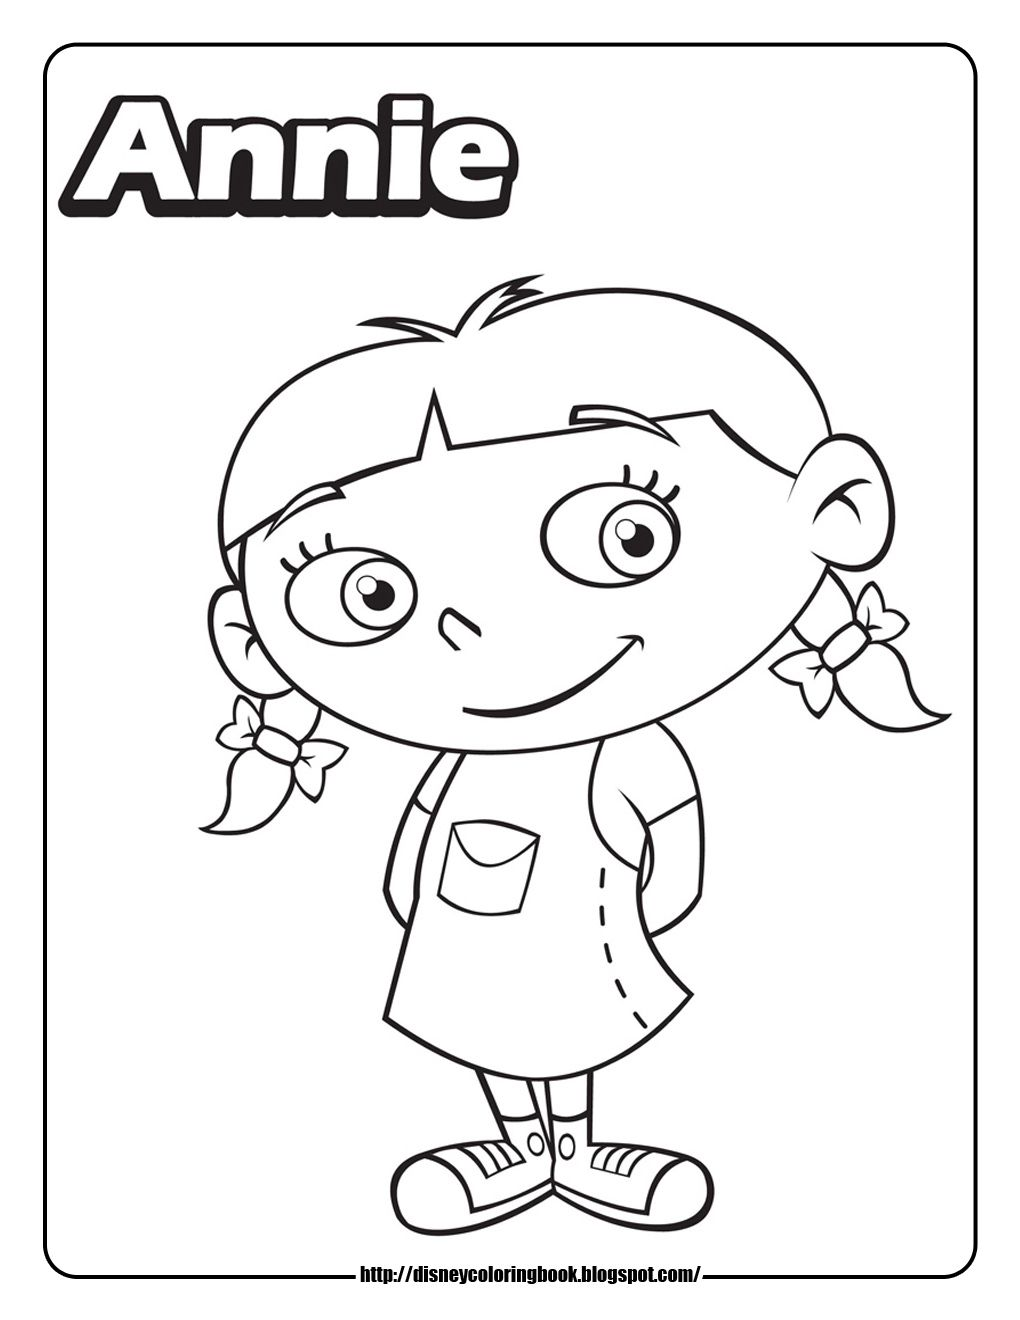 Little Einsteins 3 Free Disney Coloring Sheets Cartoon Coloring